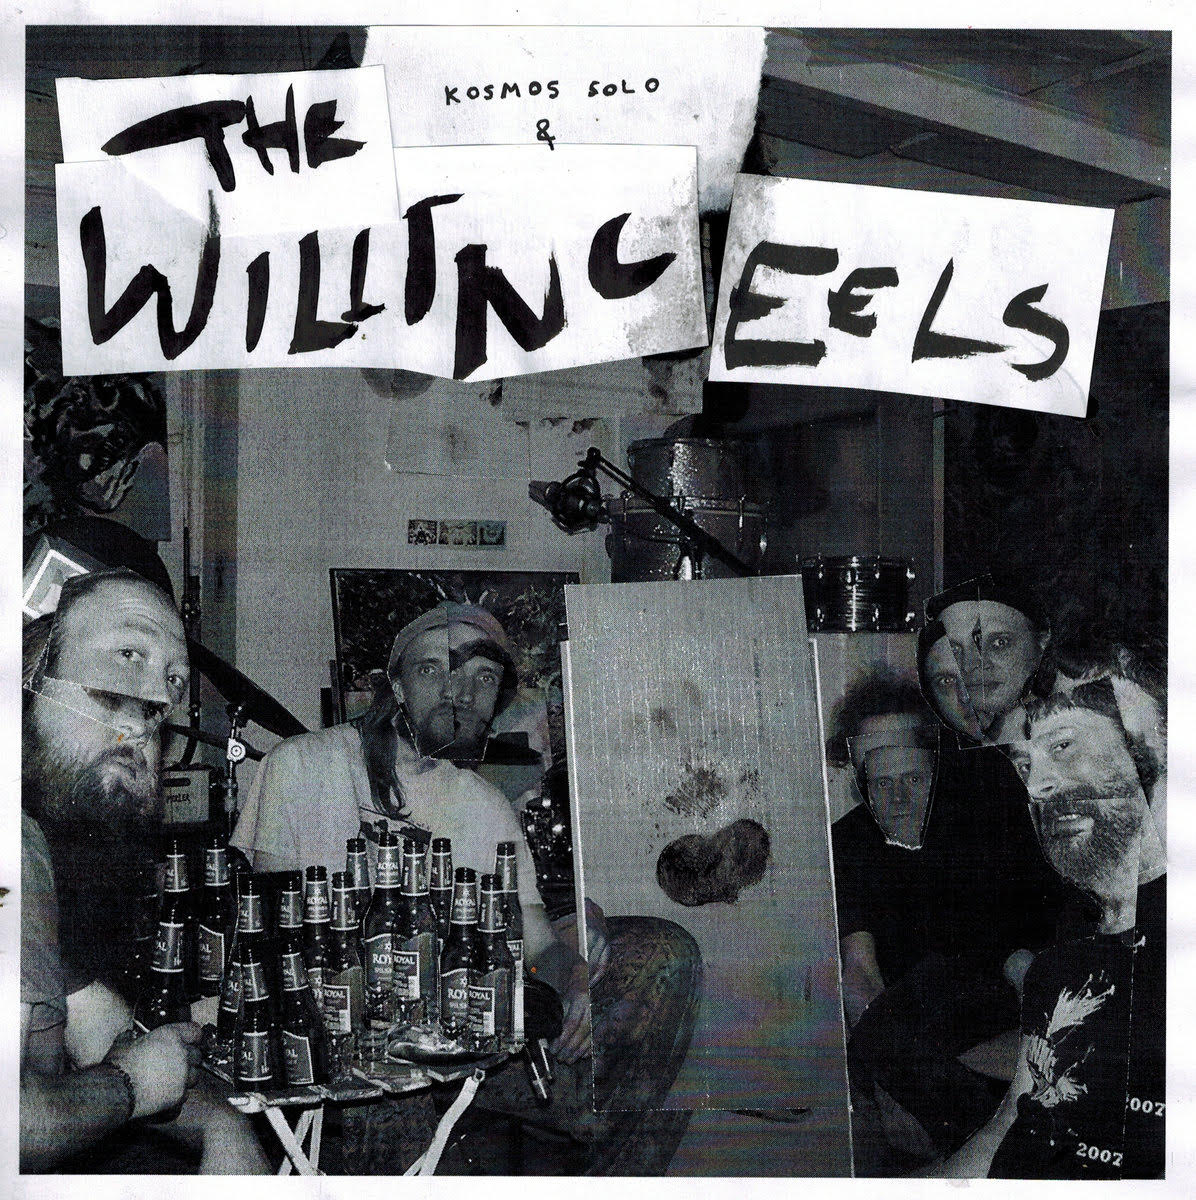 The House Festival – KOSMOS SOLO & The Willing Eels